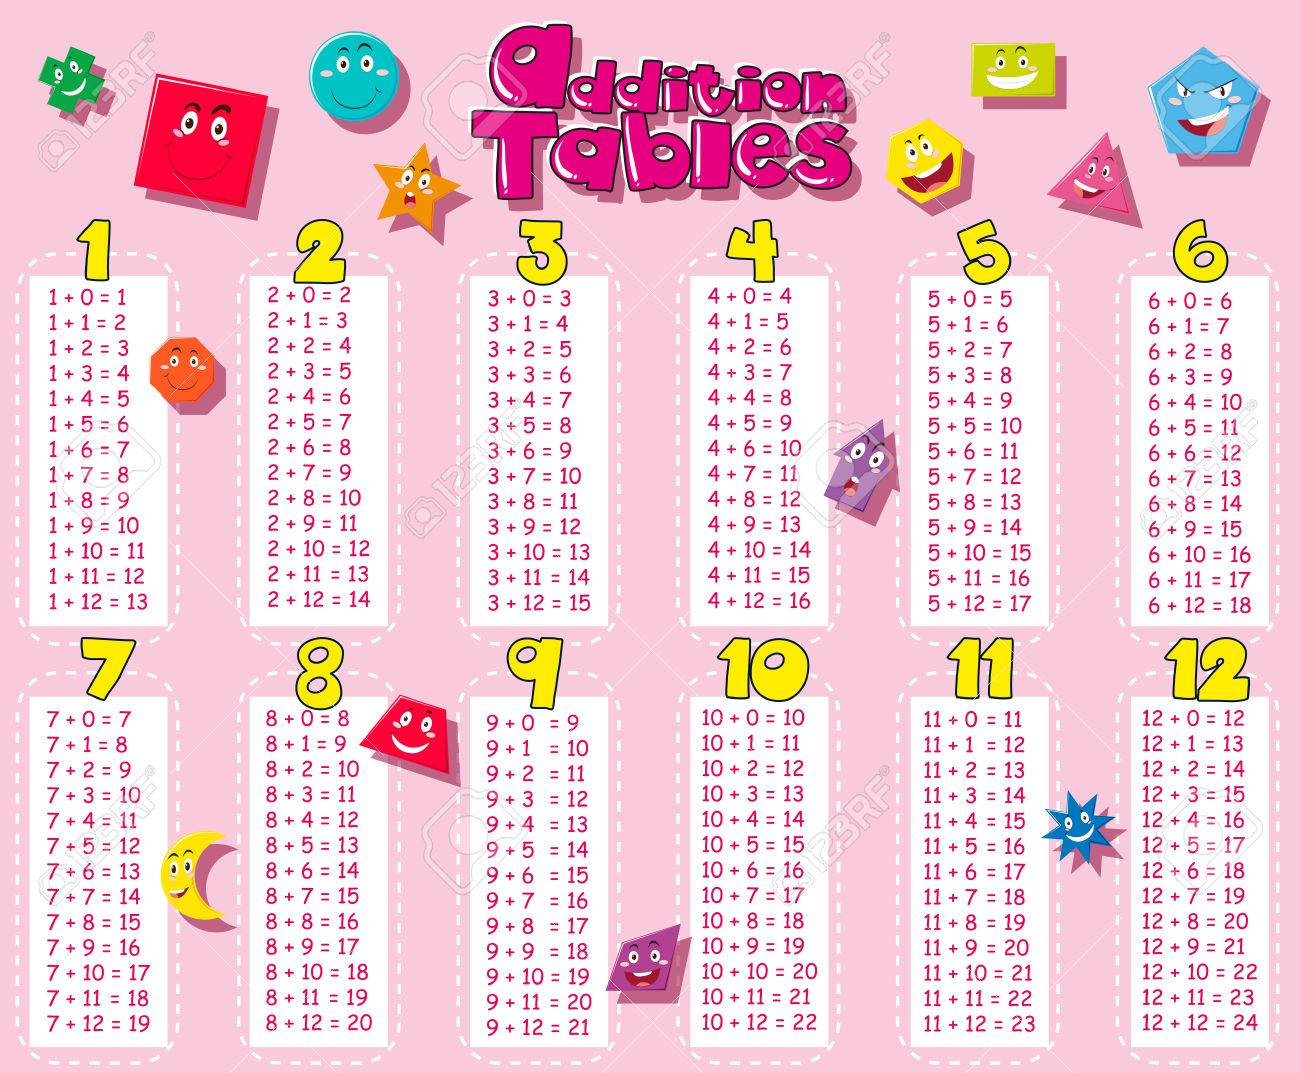 Multiplication Table 1 13 Gallery - Periodic Table Images